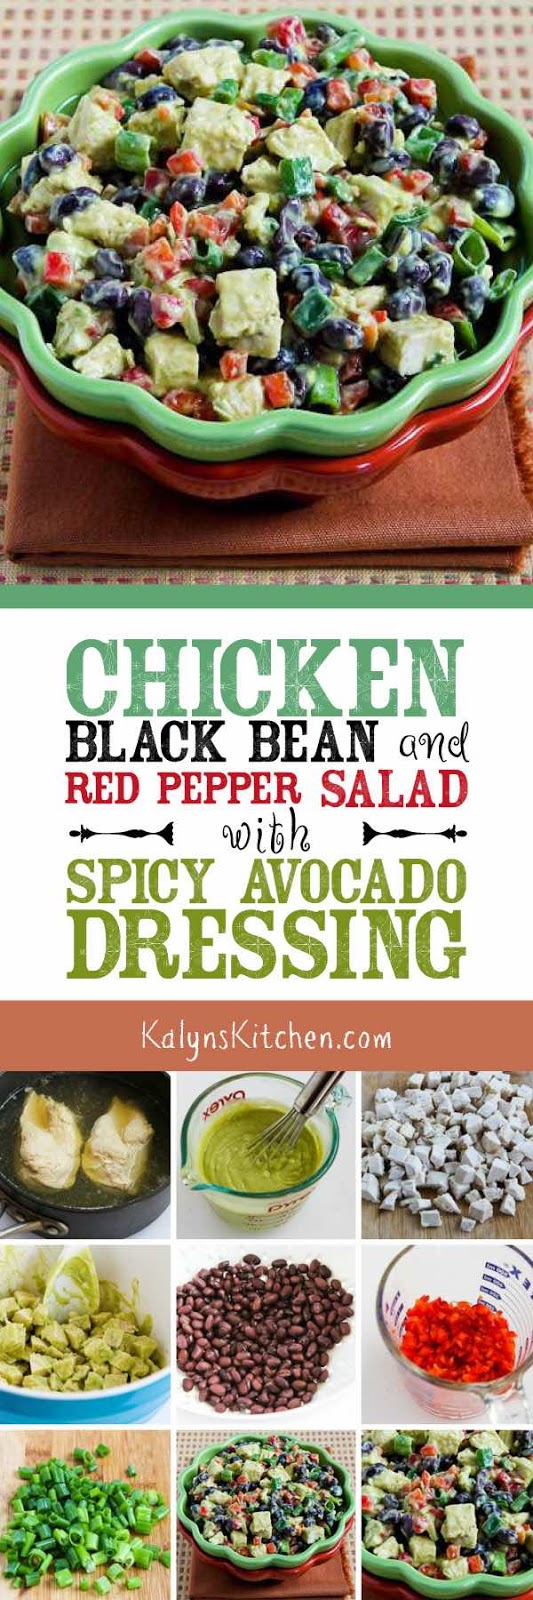 Chicken, Black Bean, and Red Pepper Salad with Spicy ...